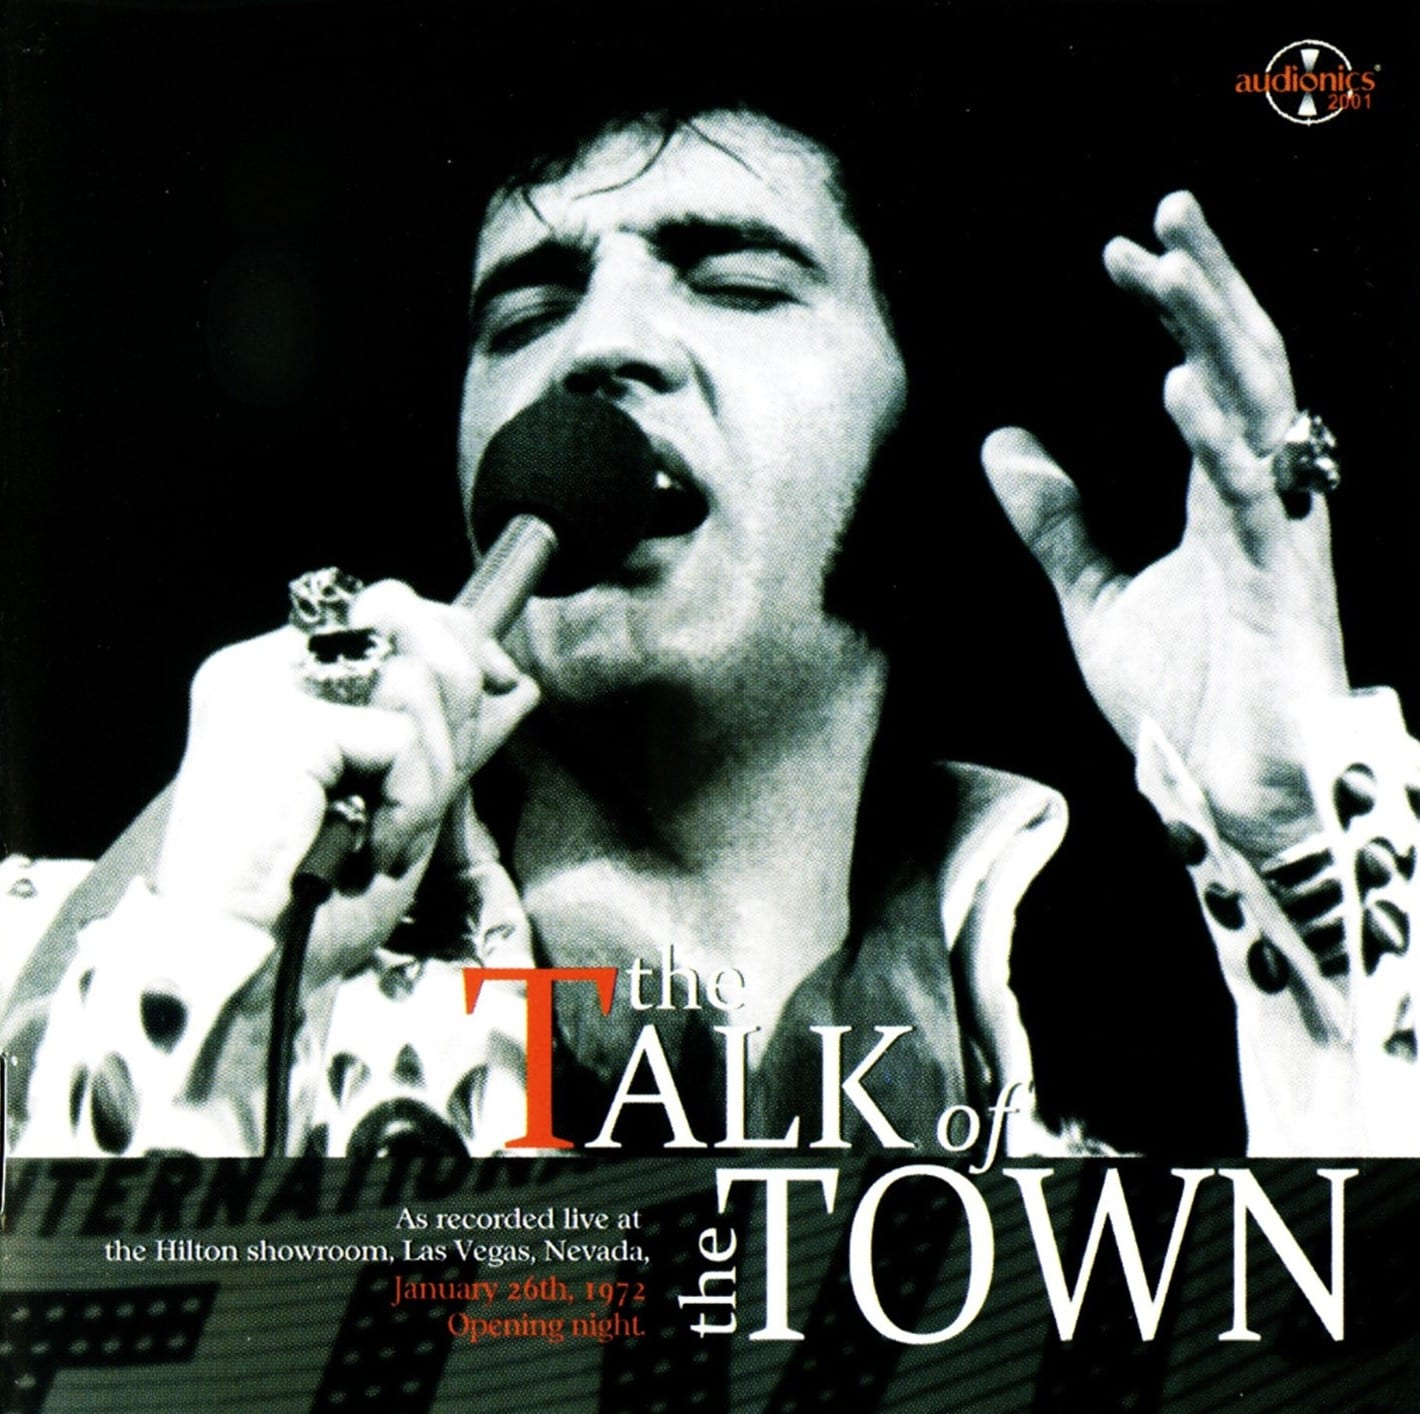 Elvis Presley - The Talk Of The Town (January 26, 1972) (2008) CD 9